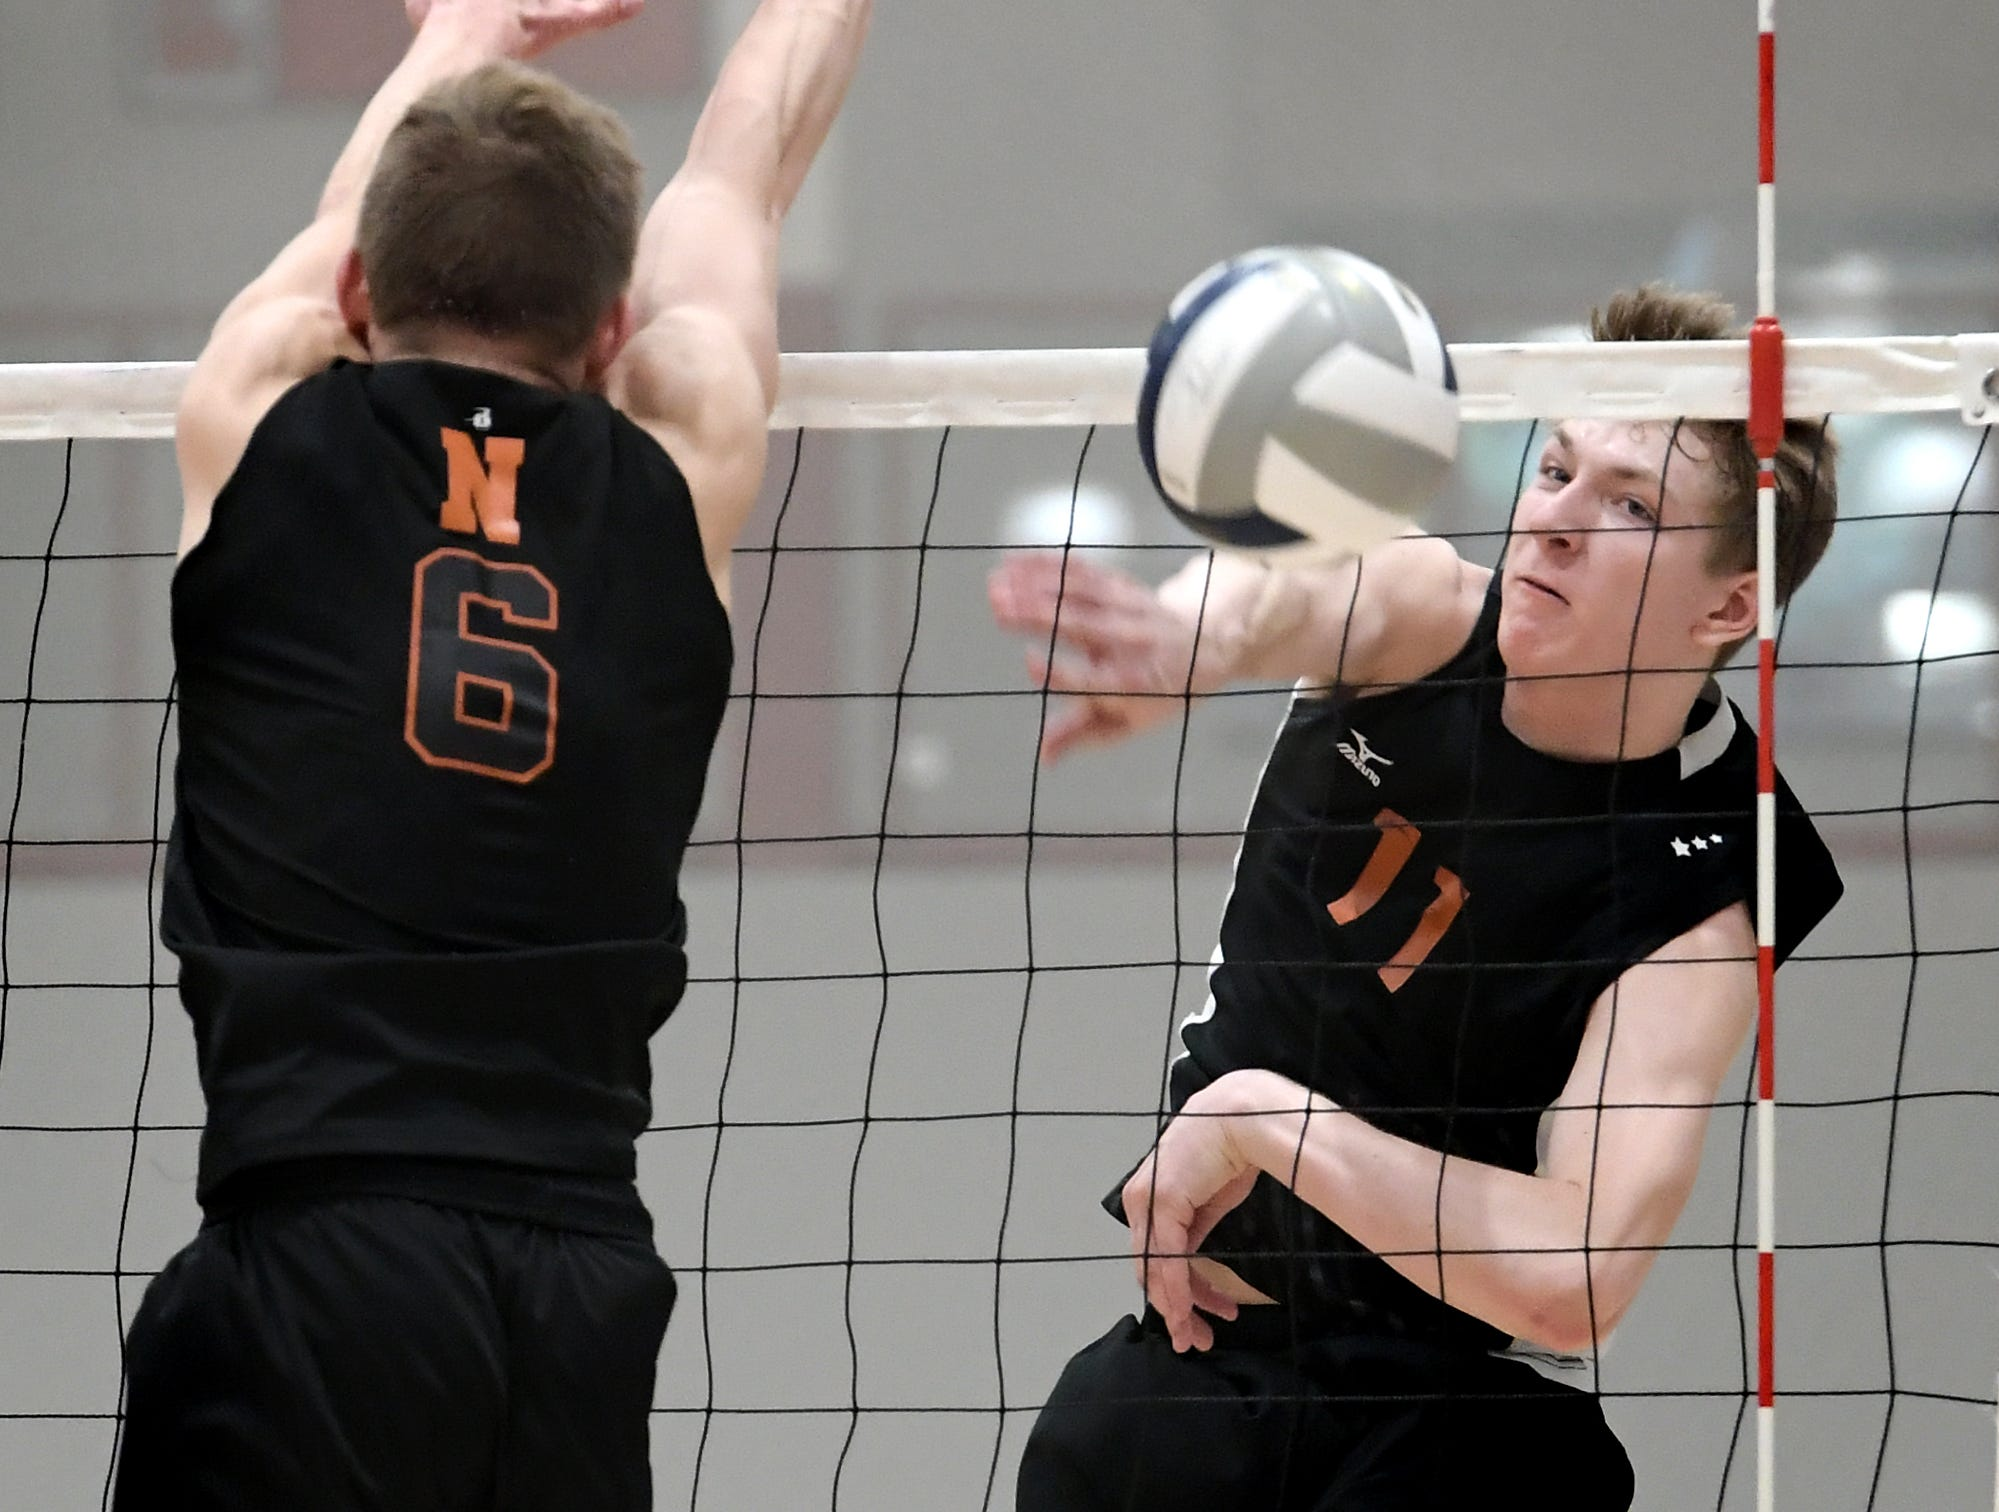 Central York's Braden Richard gets a shot past Northeastern's Austin Richards, left, during action at Central York Tuesday, May 7, 2019. Northeastern earned the York-Adams League regular-season title with a 3-1 win. Bill Kalina photo